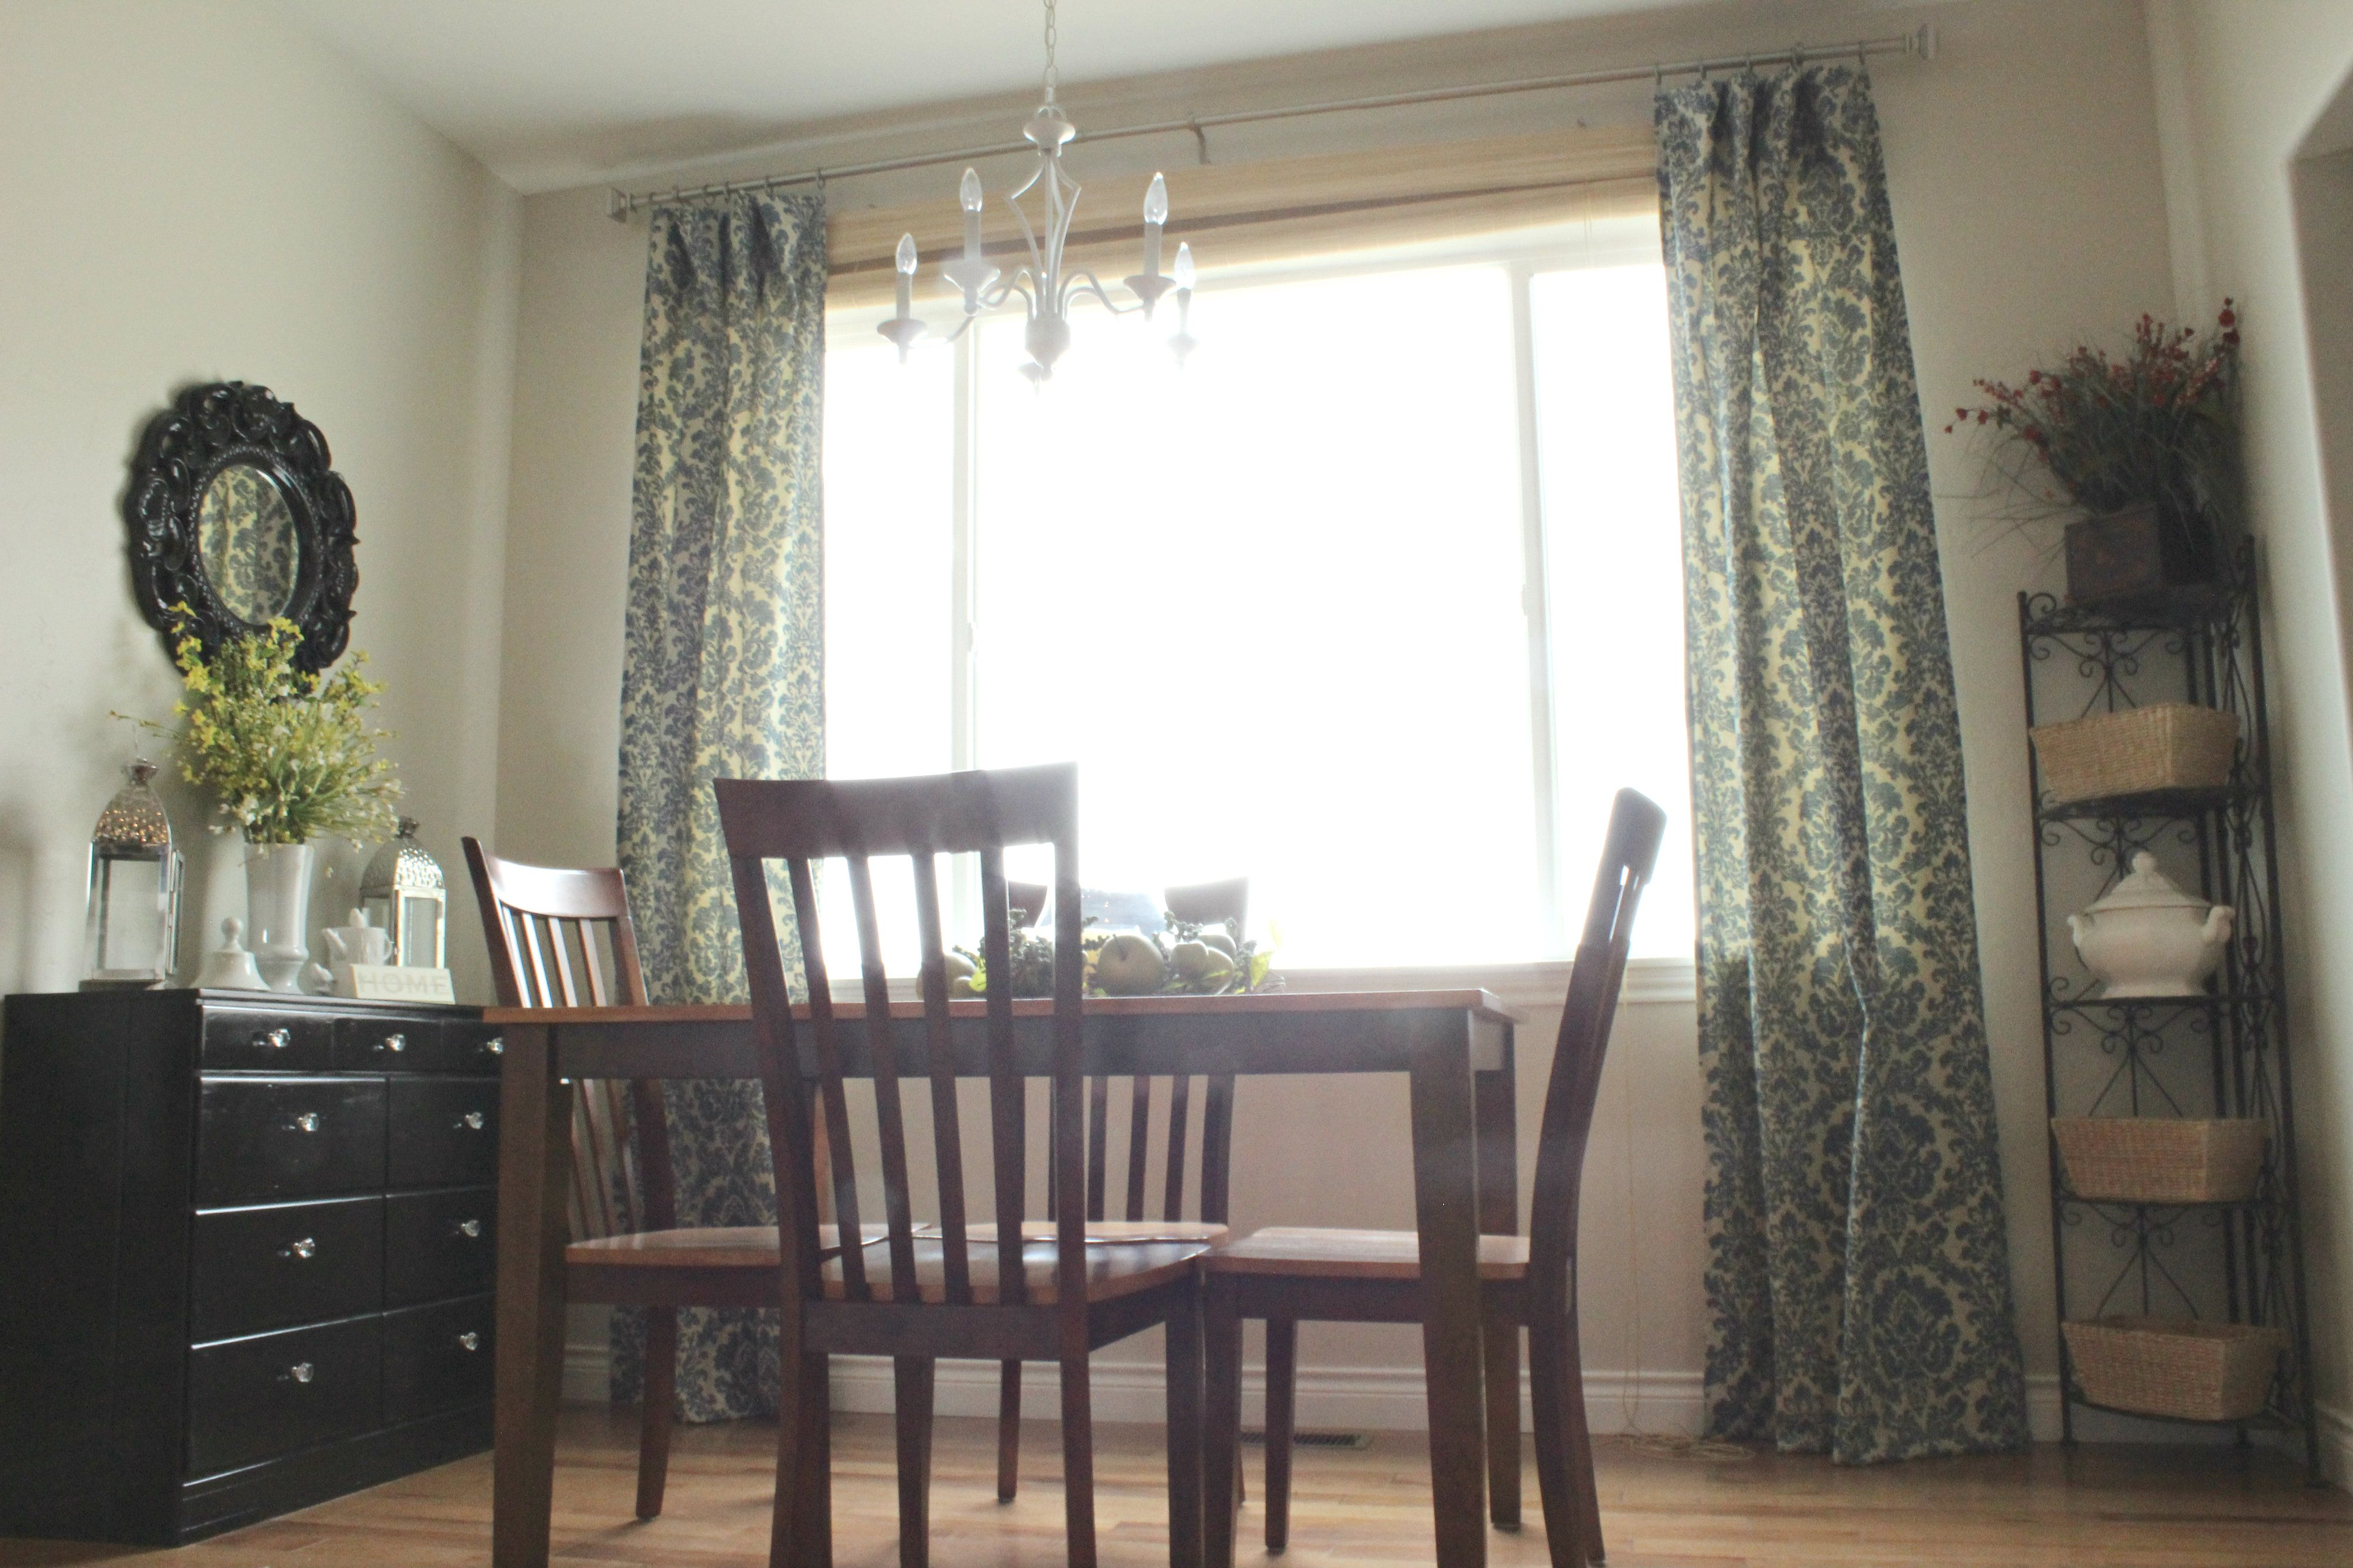 ikea curtains living room - google search | diningroom-livingroom